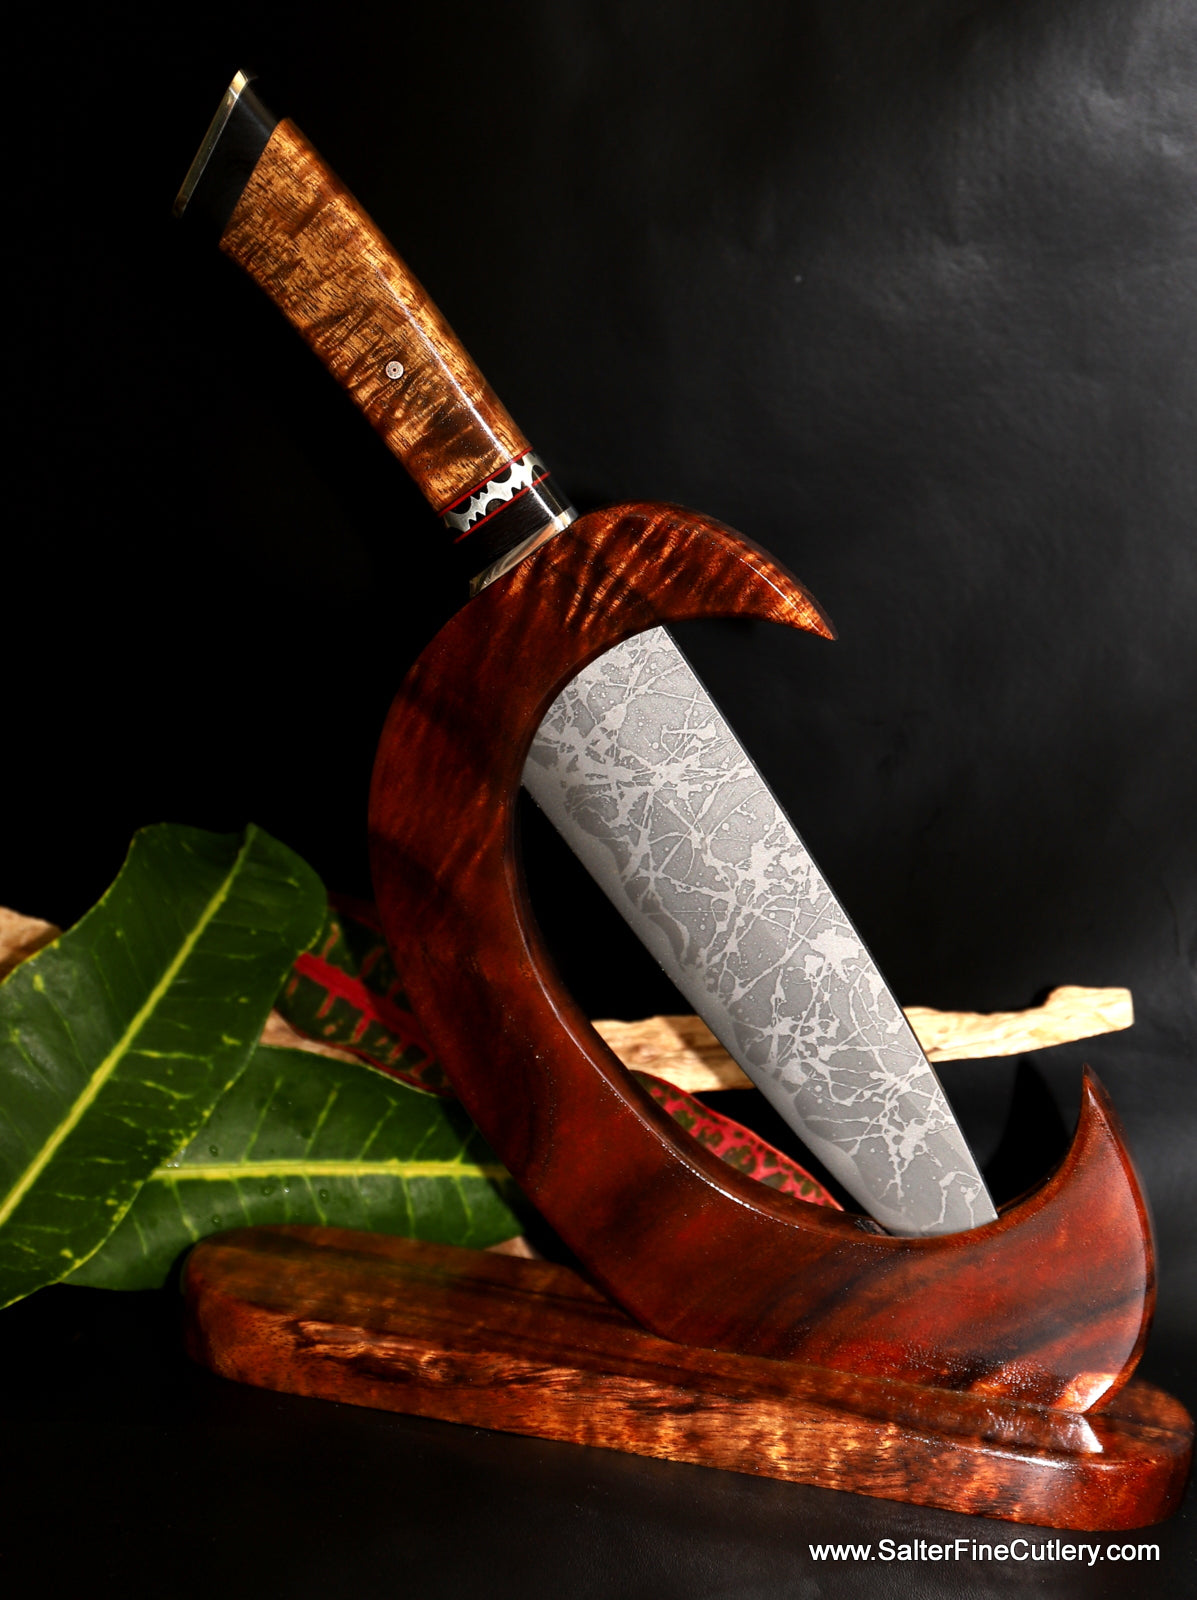 MkII Ltd Edition collectible knife with blade by Kiku from Gregg Salter of Salter Fine Cutlery Hawaii